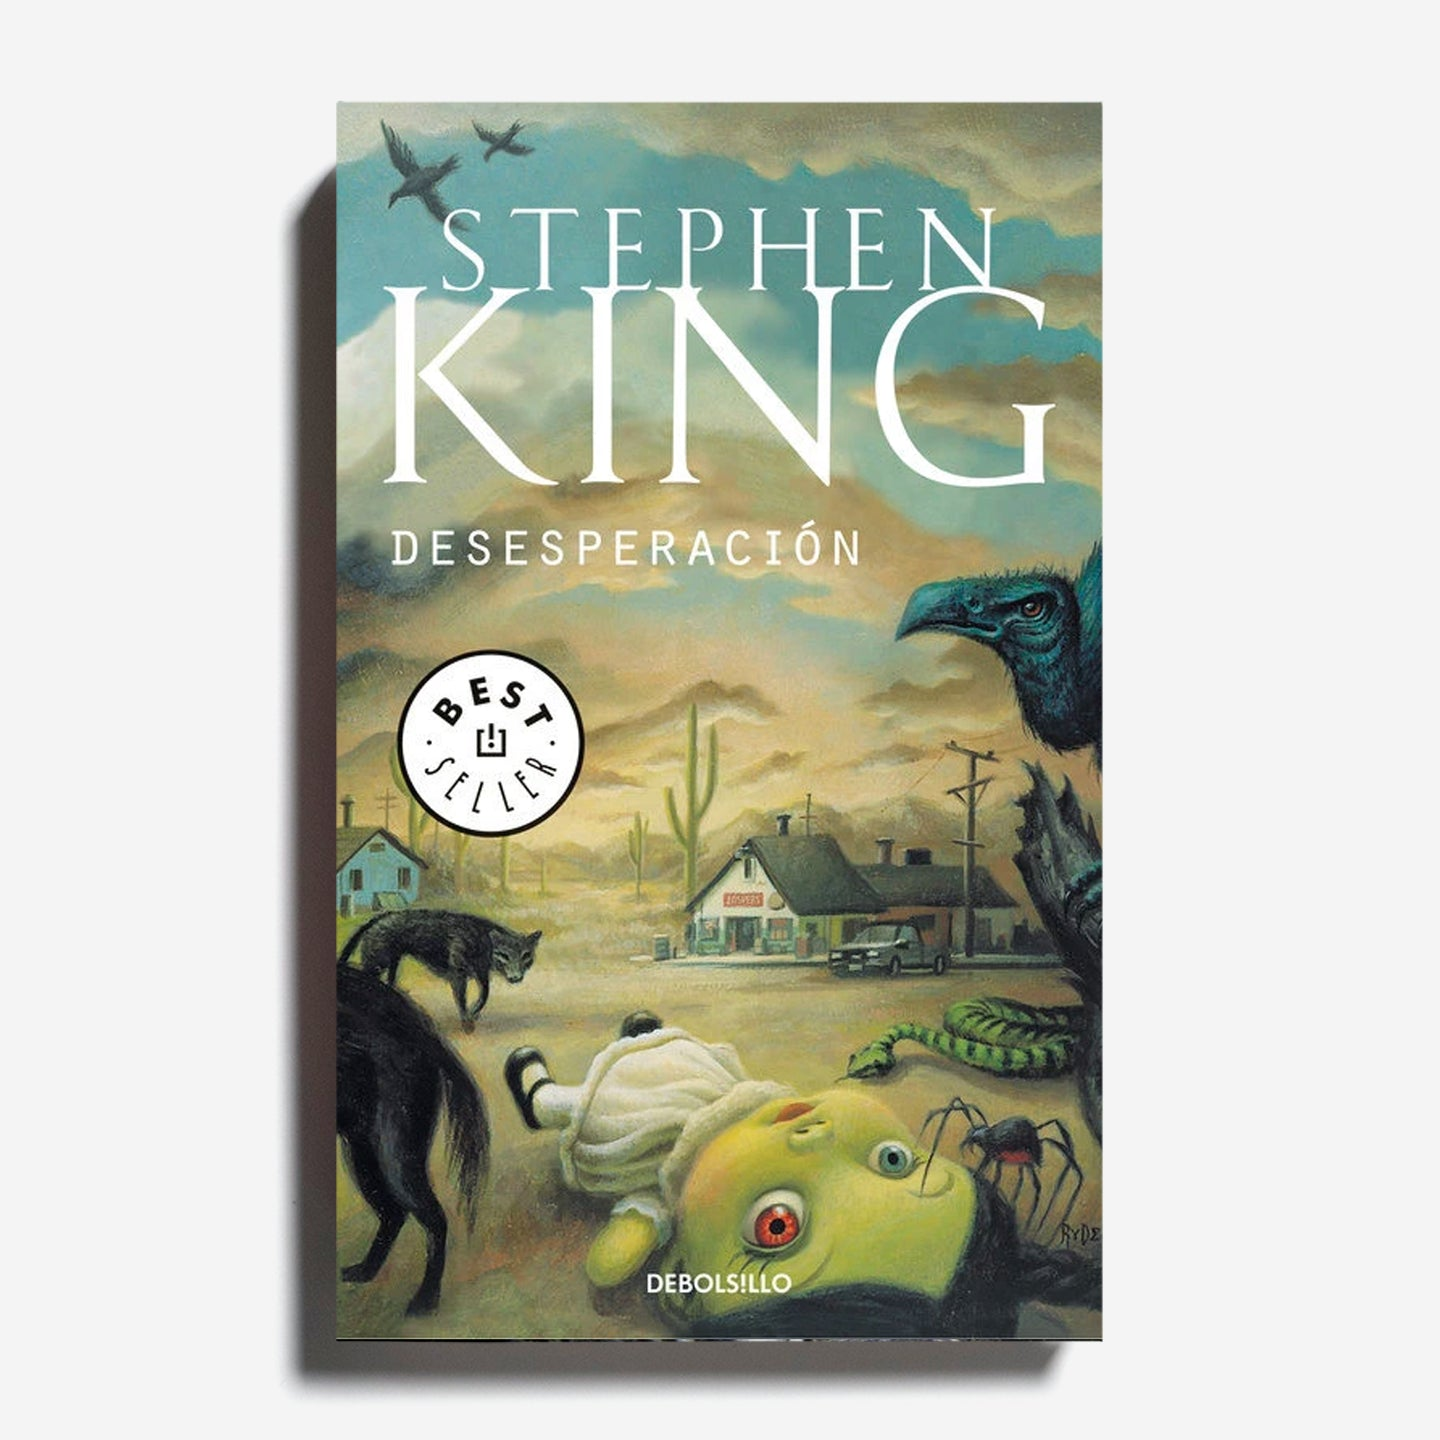 STEPHEN KING | Desesperación